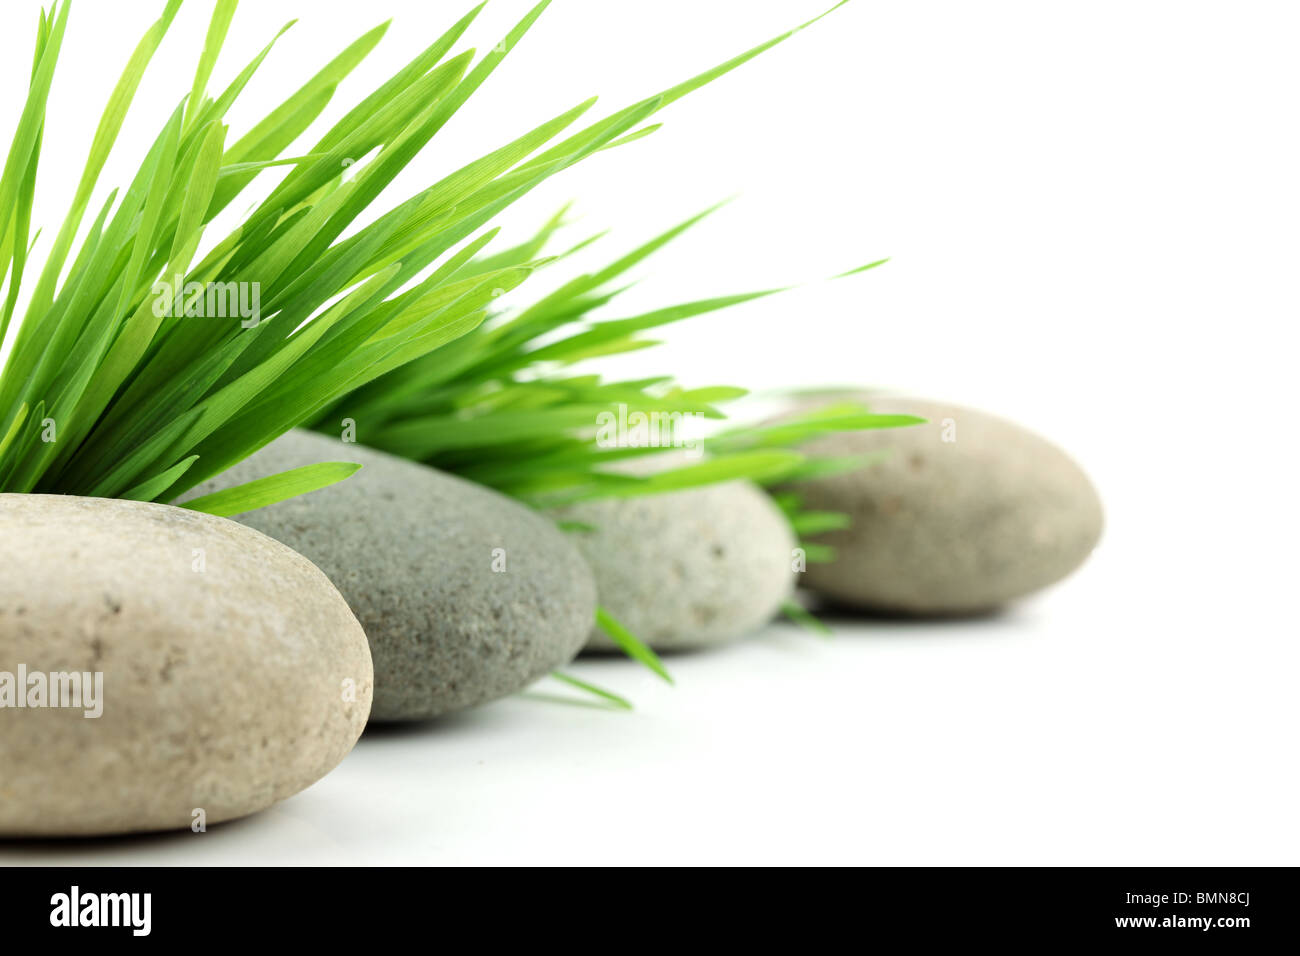 Zen stone with fresh grass on white background - Stock Image